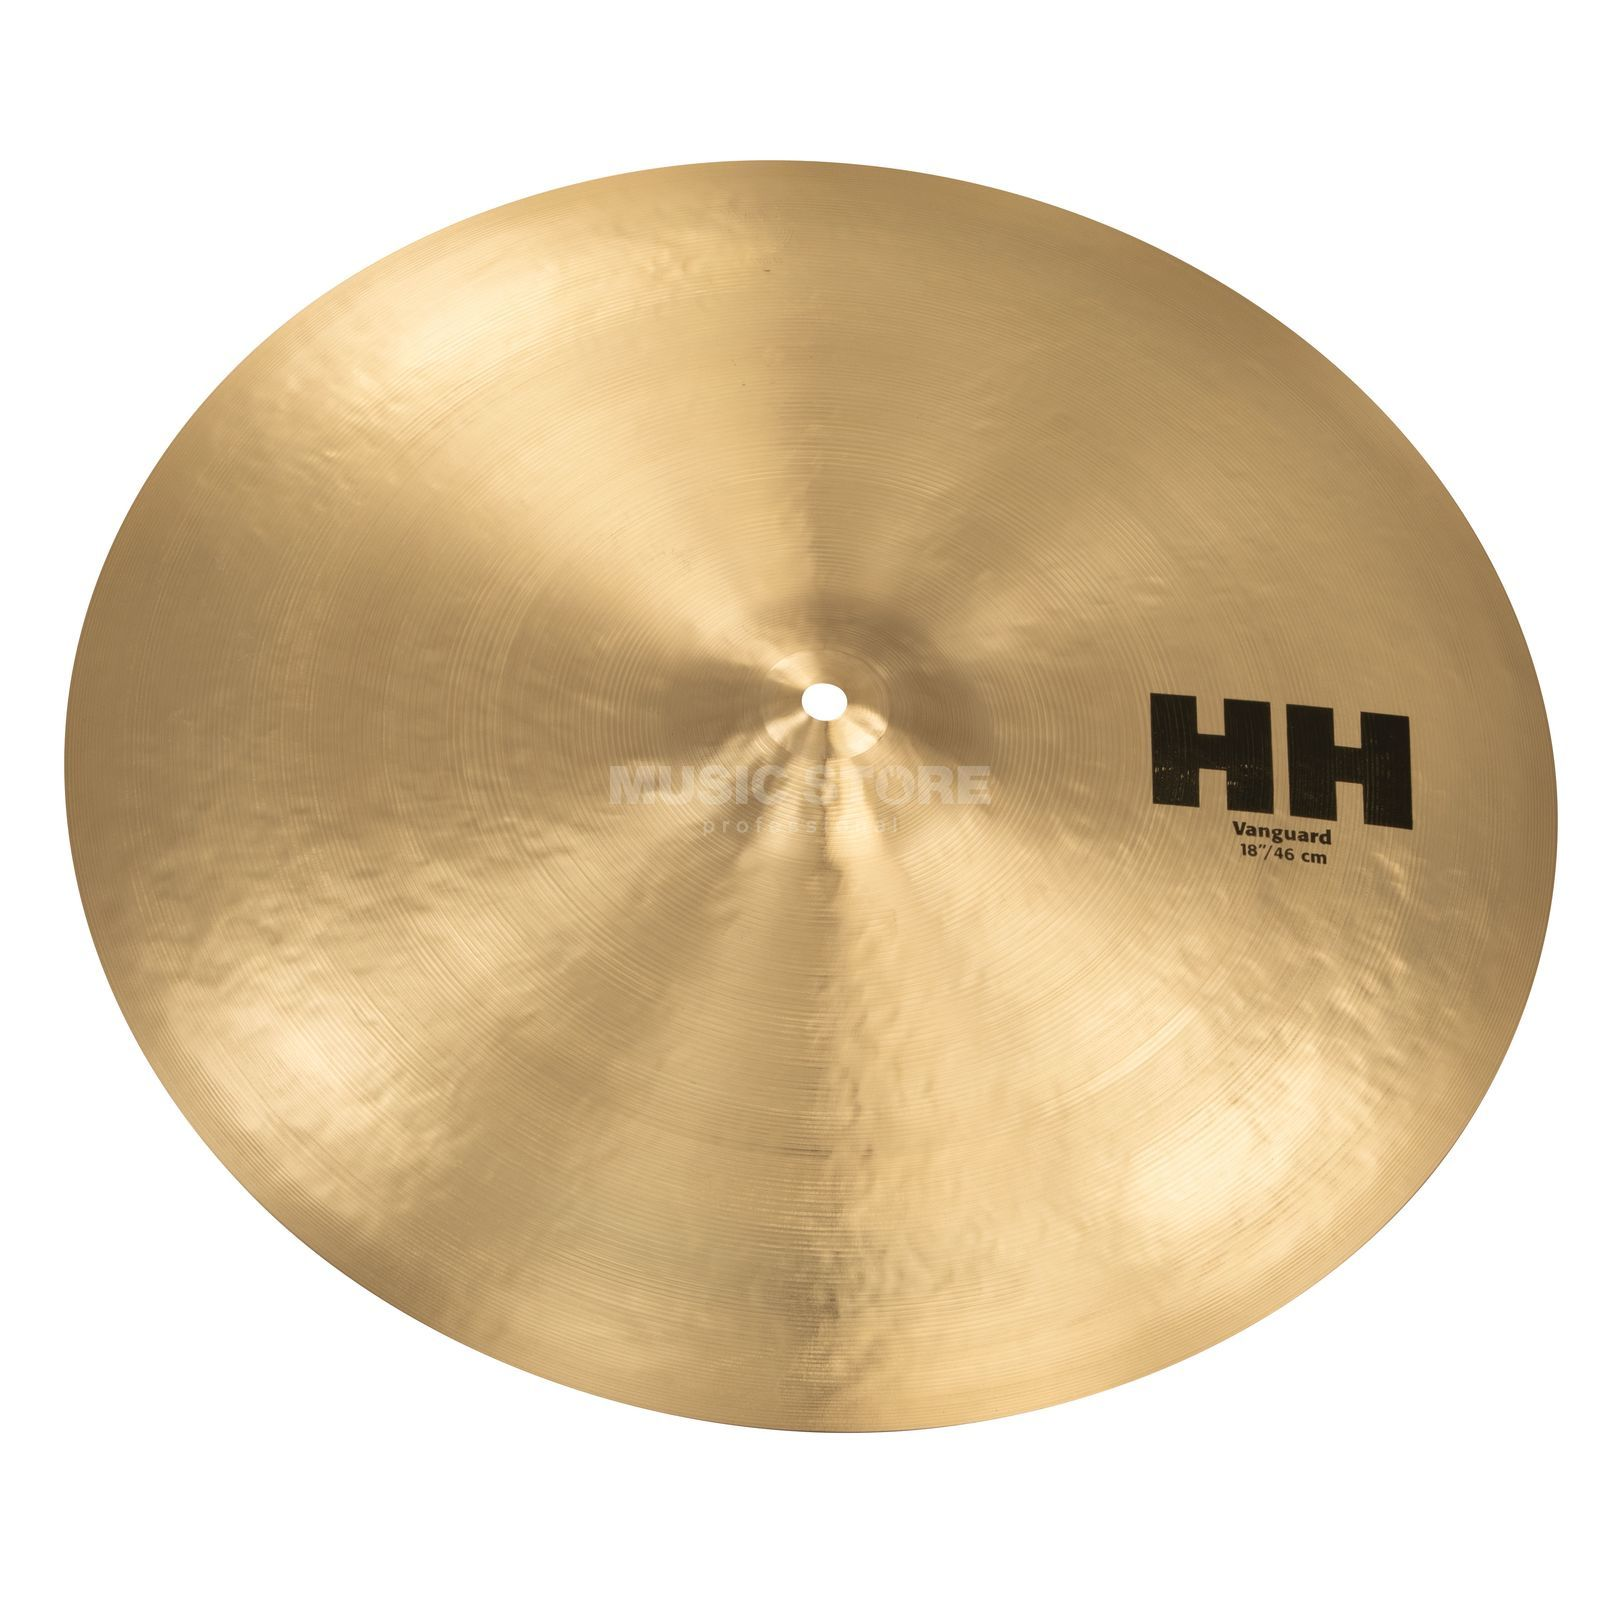 "Sabian HH Vanguard Crash 18"", Remastered Produktbild"